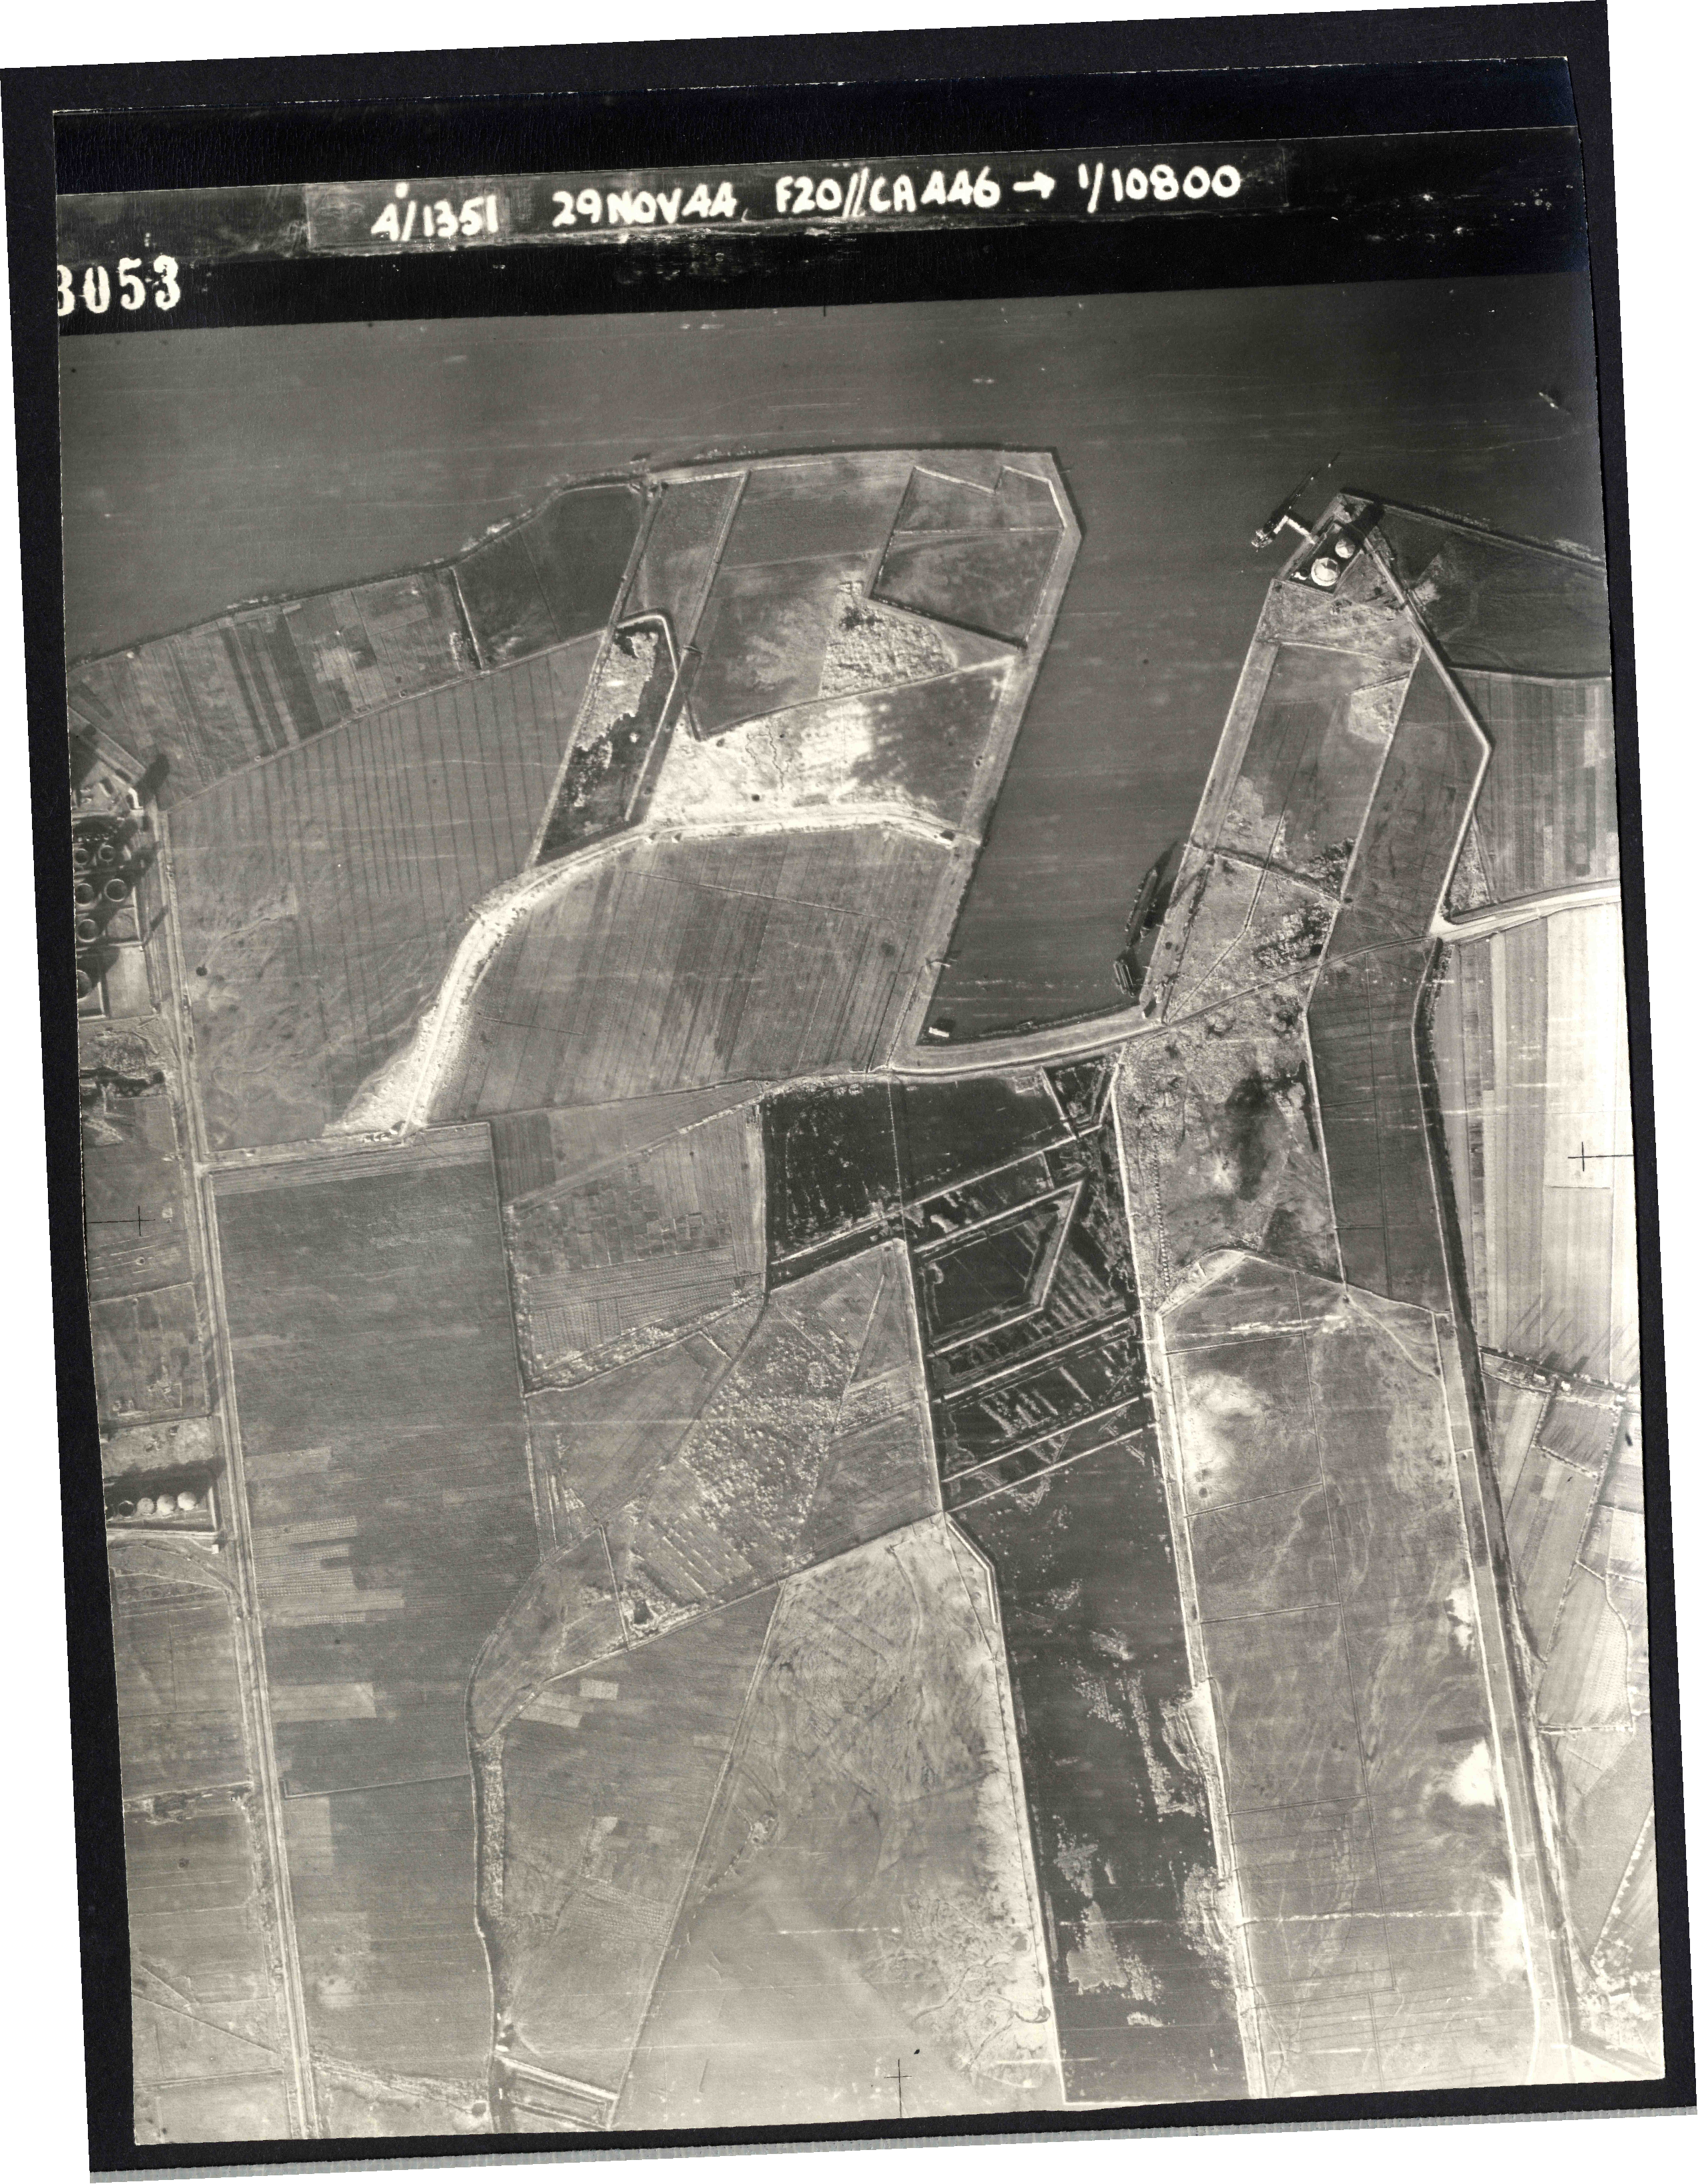 Collection RAF aerial photos 1940-1945 - flight 045, run 03, photo 3053